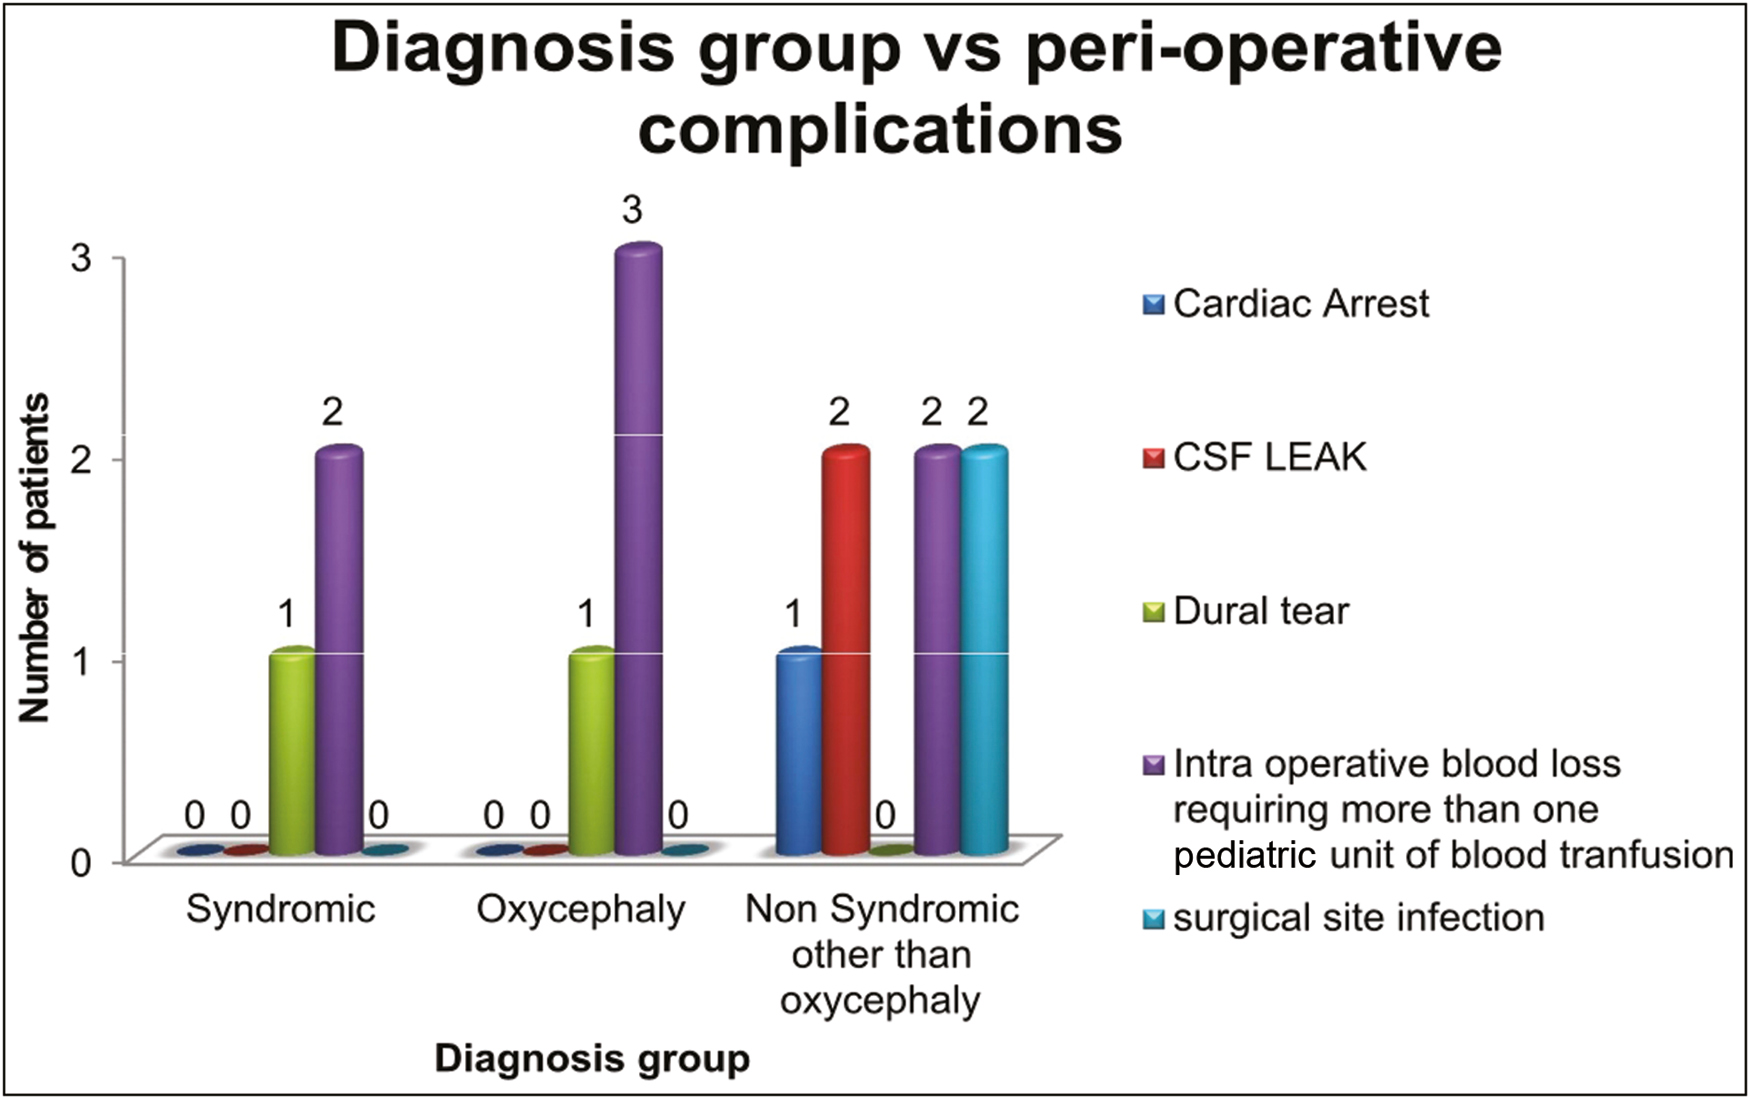 Figure 7: Graphical representation showing the various types of perioperative complications with respect to diagnostic group